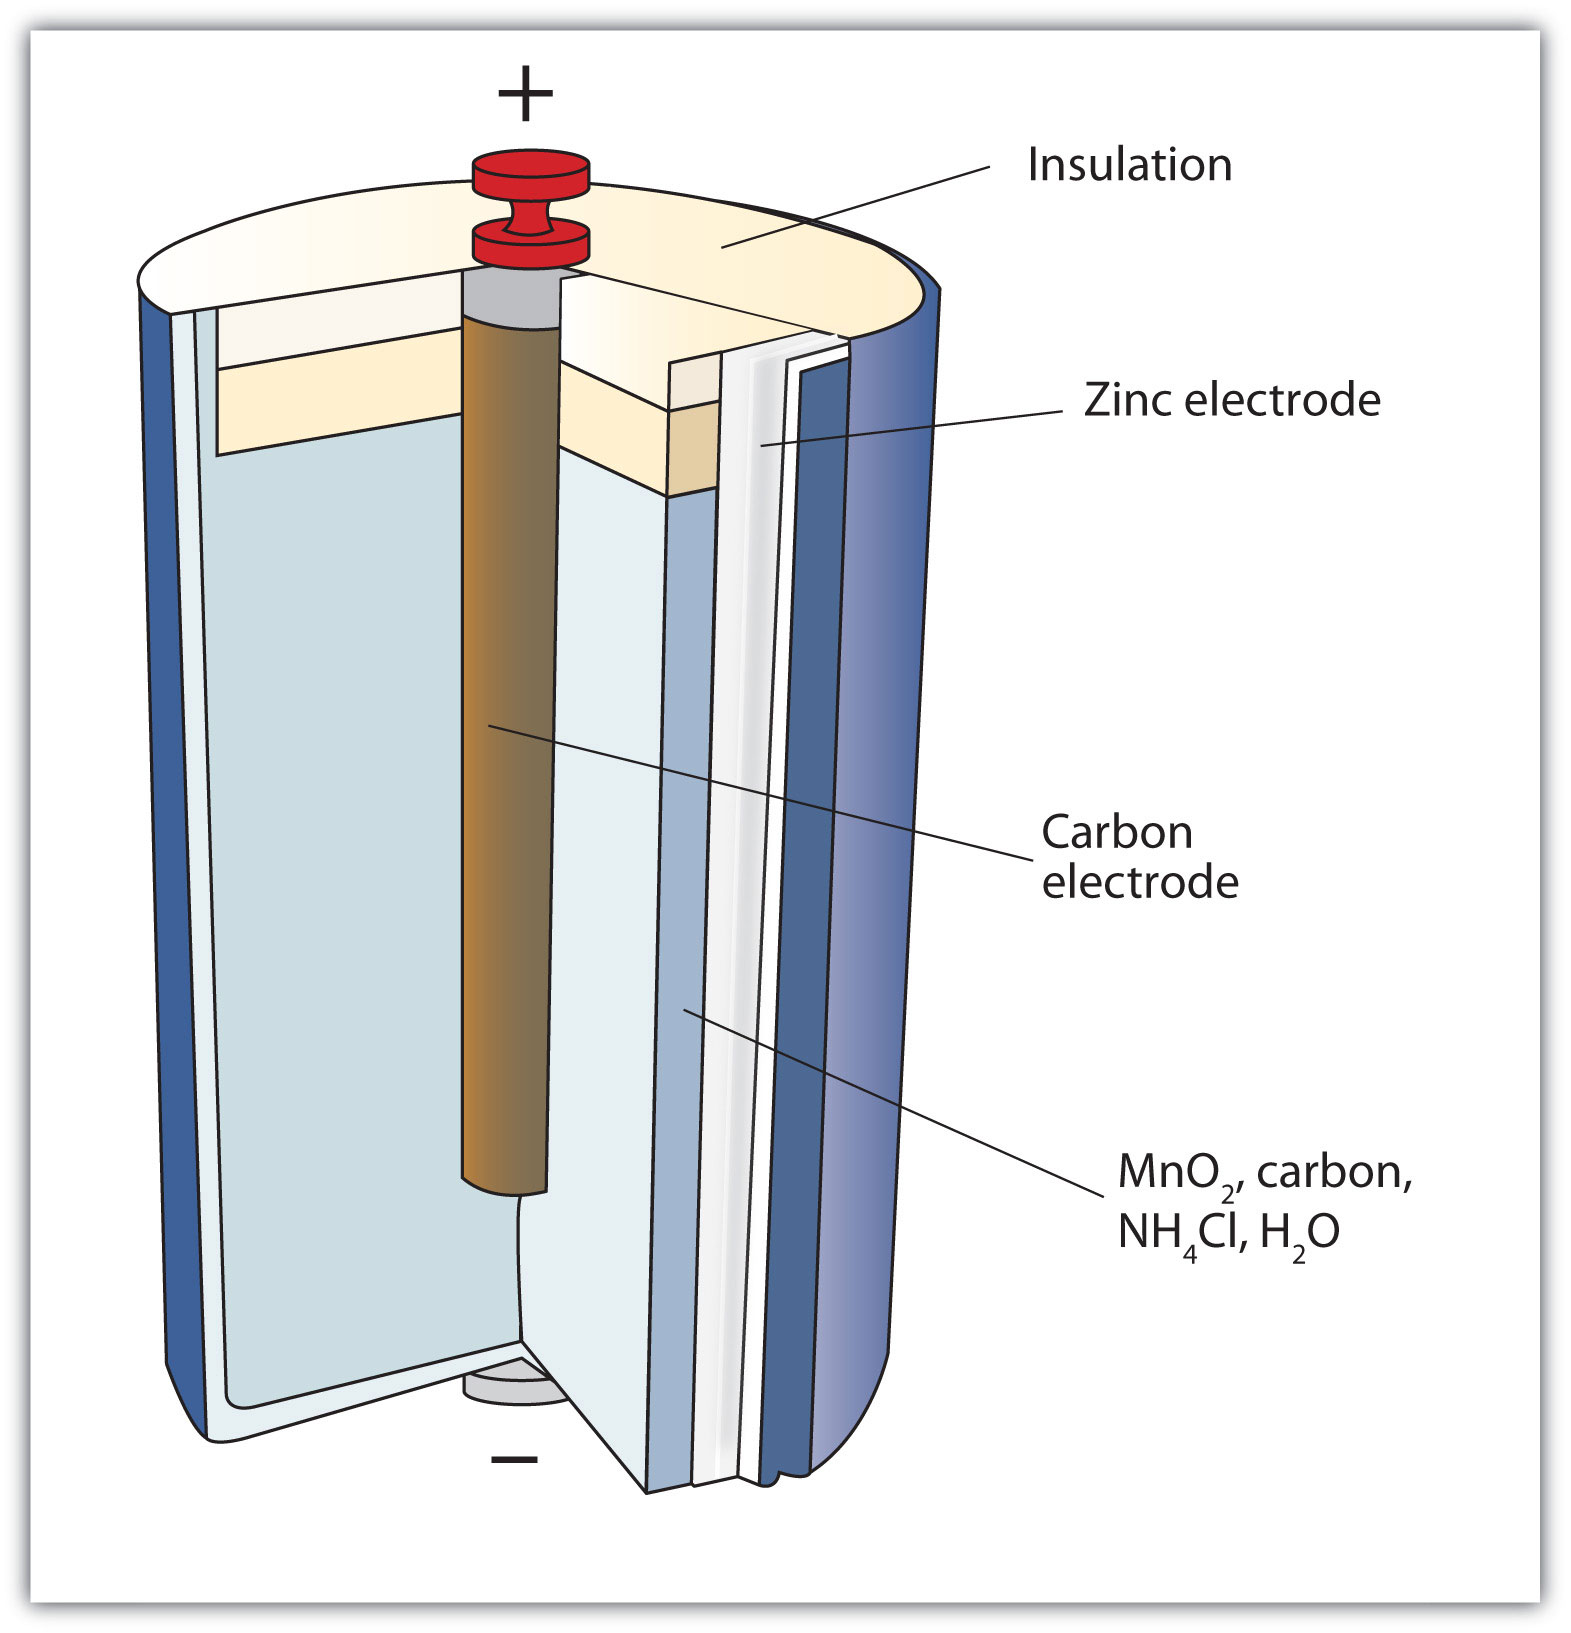 electrical principles and technologies lessons tes teach rh tes com Battery Anatomy Battery Assembly Diagram